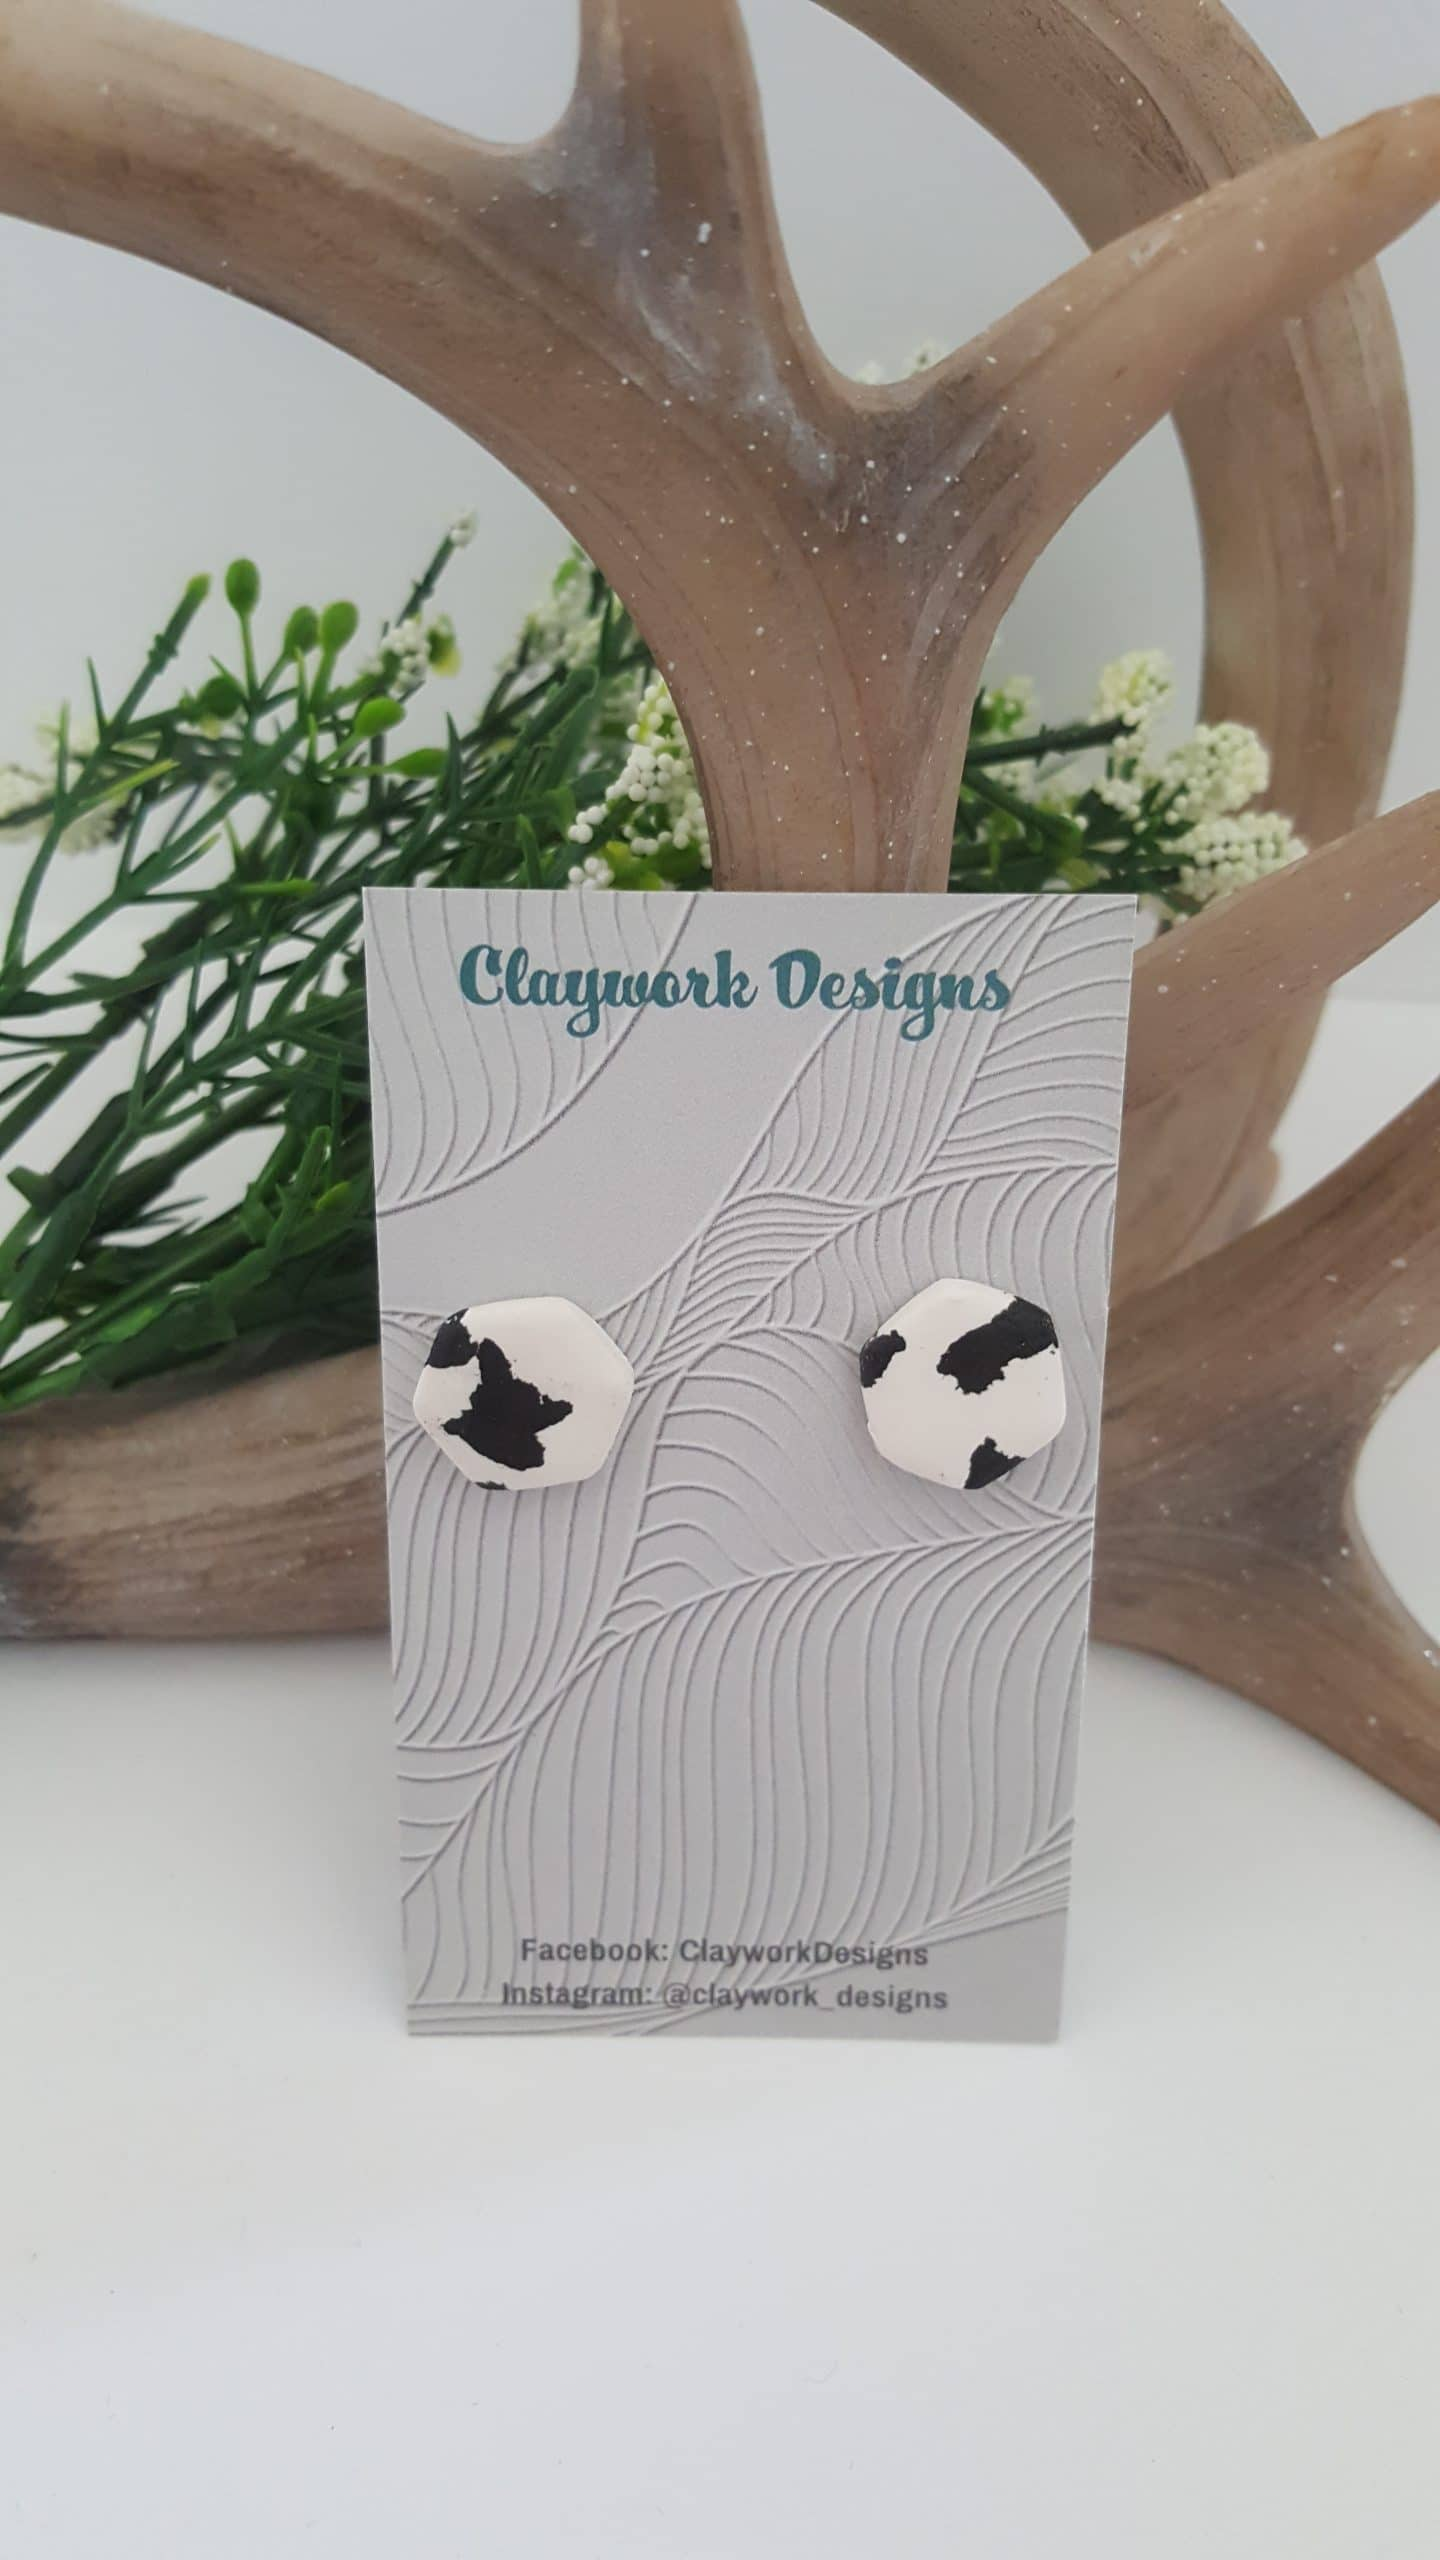 Wirework Designs   Handcrafted chainmaille jewellery and chainmaille products   Farm Animal Print Collection   20210515_150442